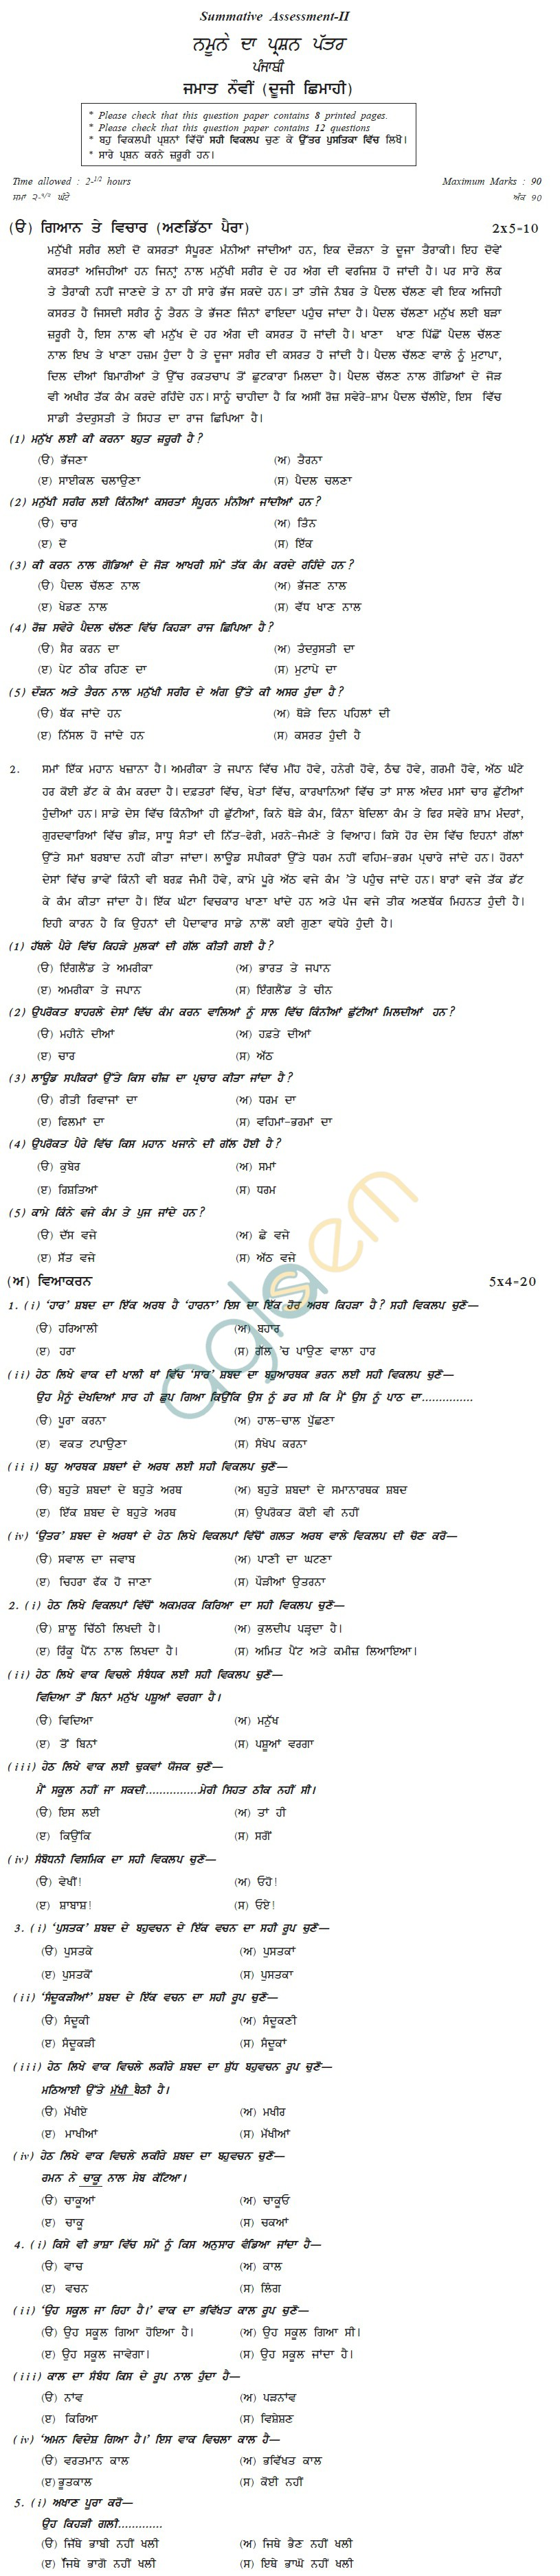 CBSE Board Exam Sample Papers (SA2): Class IX - Punjabi